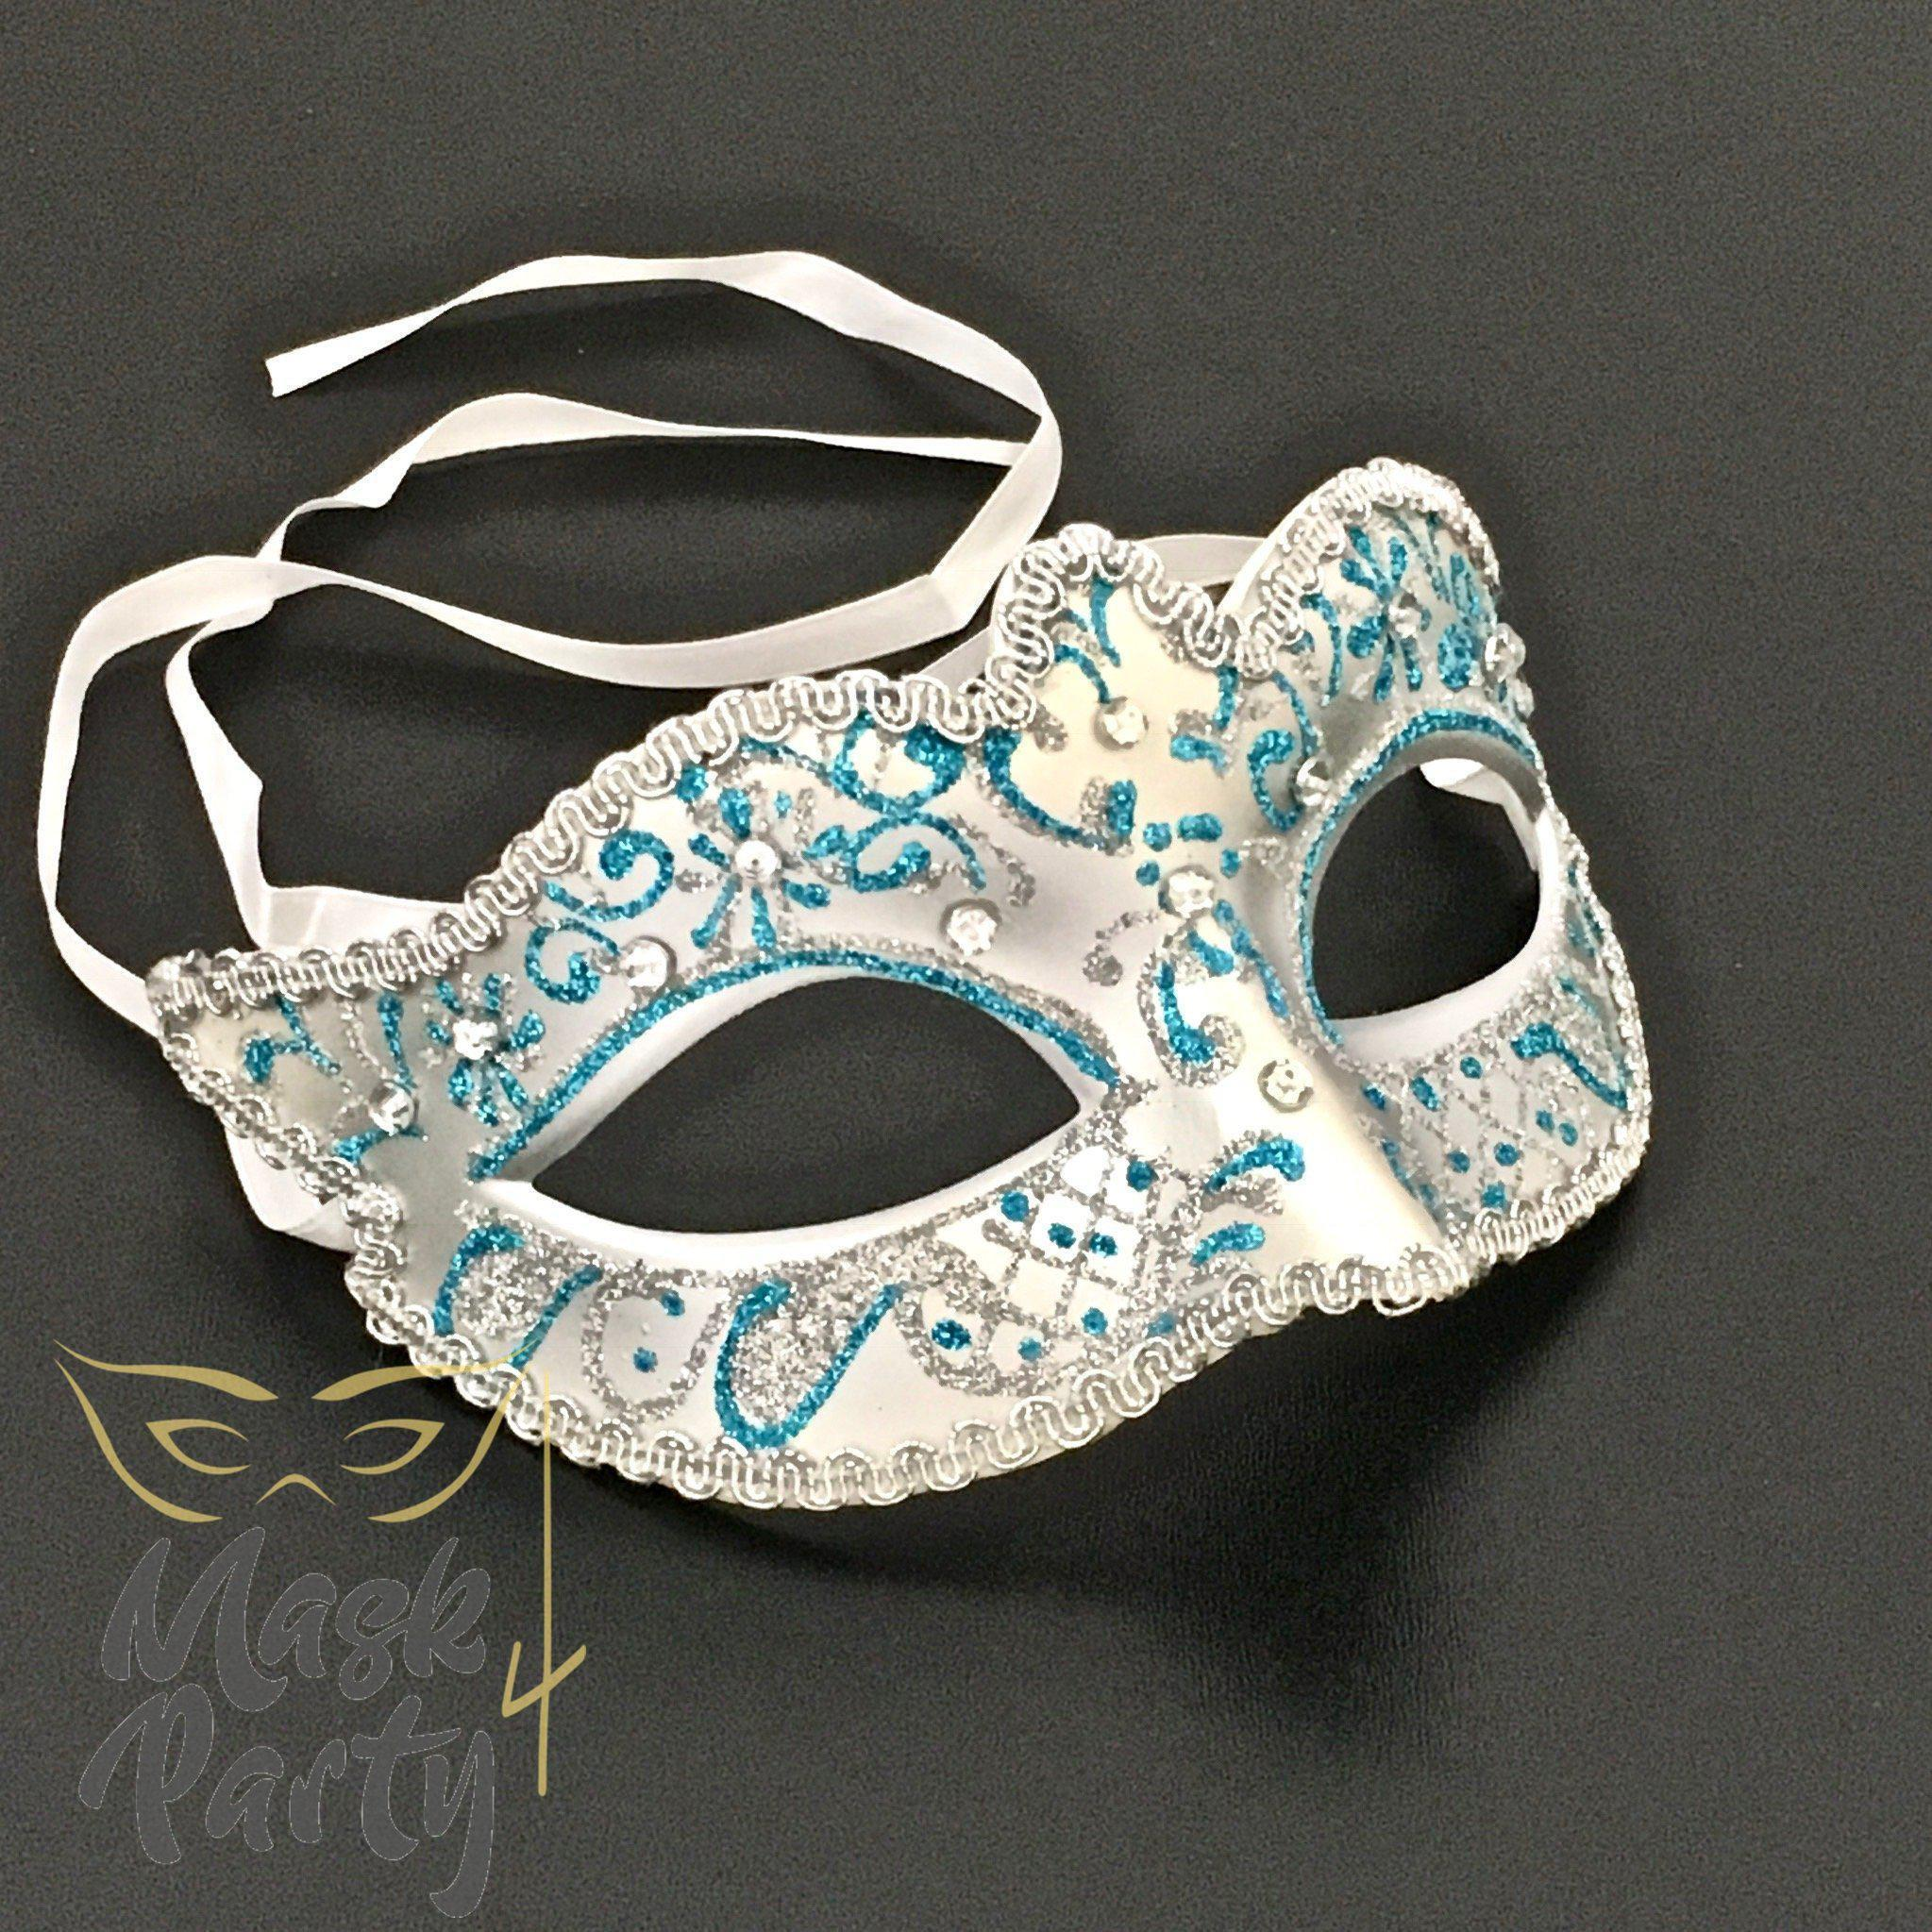 SALE - Masquerade Mask - Venetian Eye - Silver - Mask4Party